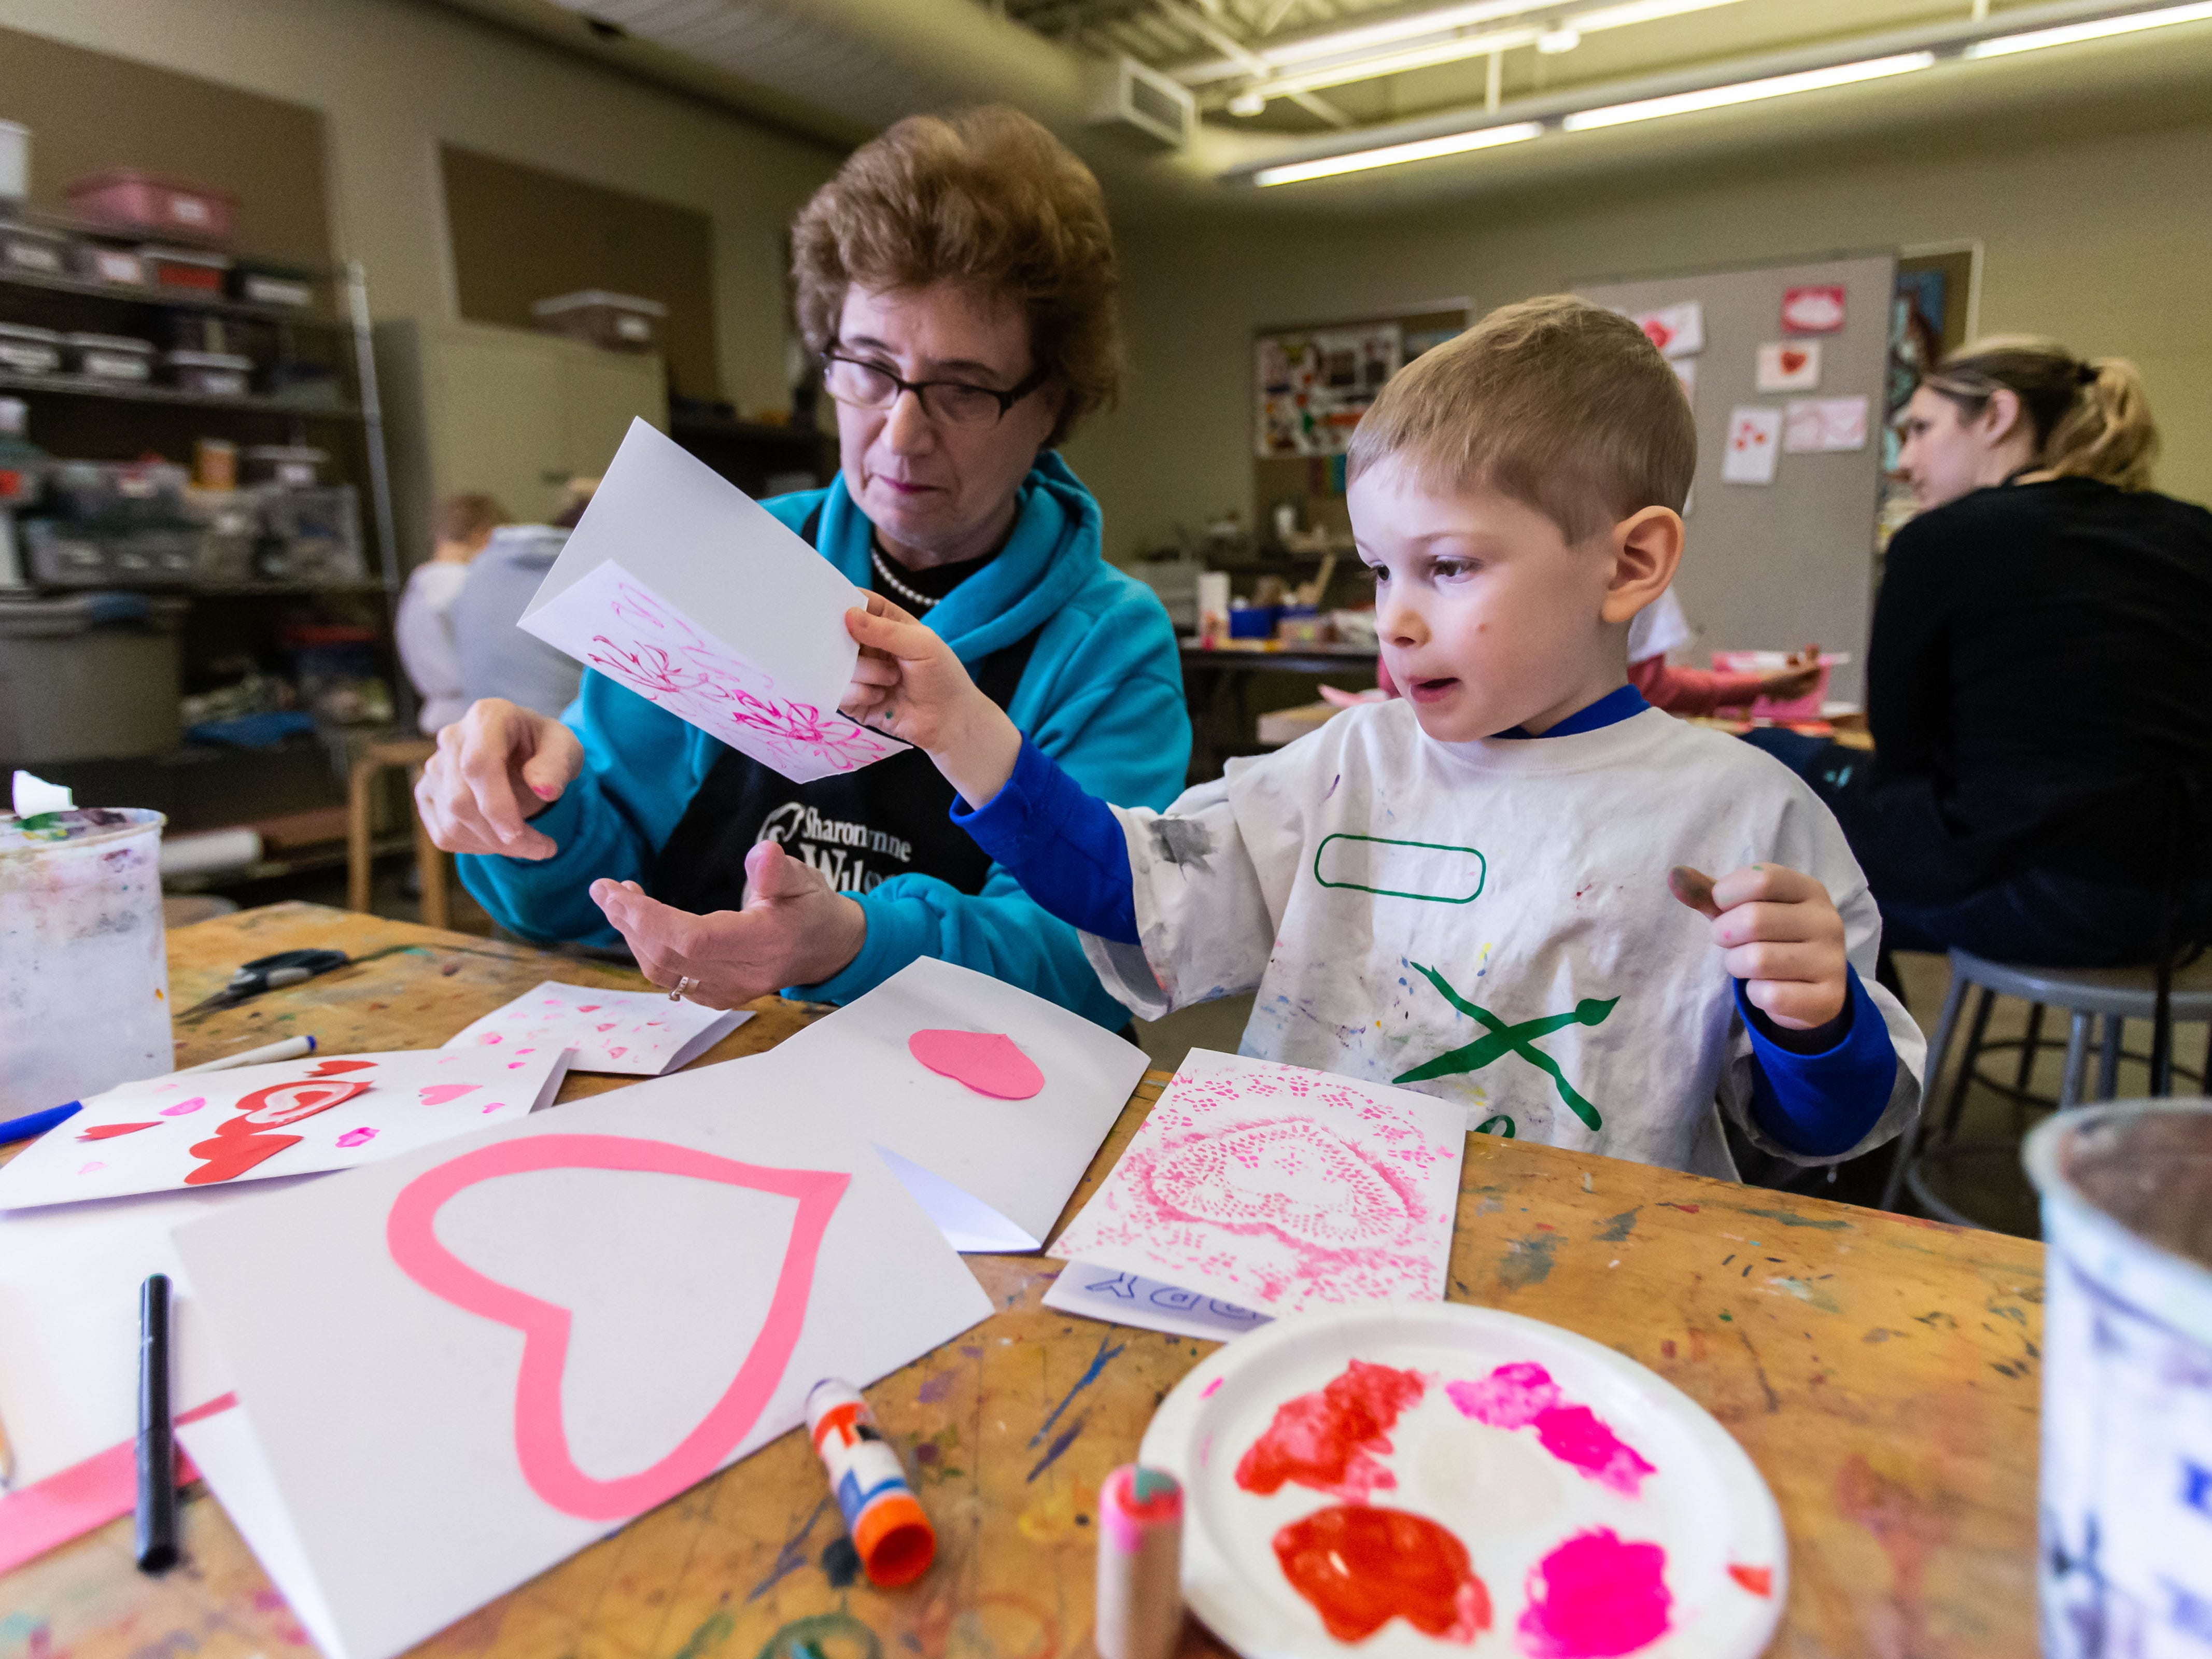 Ben Banach of Greenfield and his grandmother Carol Banach create printed Valentine's Day cards during the Free Family Art Workshop at the Sharon Lynne Wilson Center for the Arts in Brookfield on Saturday, Feb. 9, 2019. The free art workshops are held from 10 a.m. to noon on the second Saturday of each month. For more info visit wilson-center.com/classes.